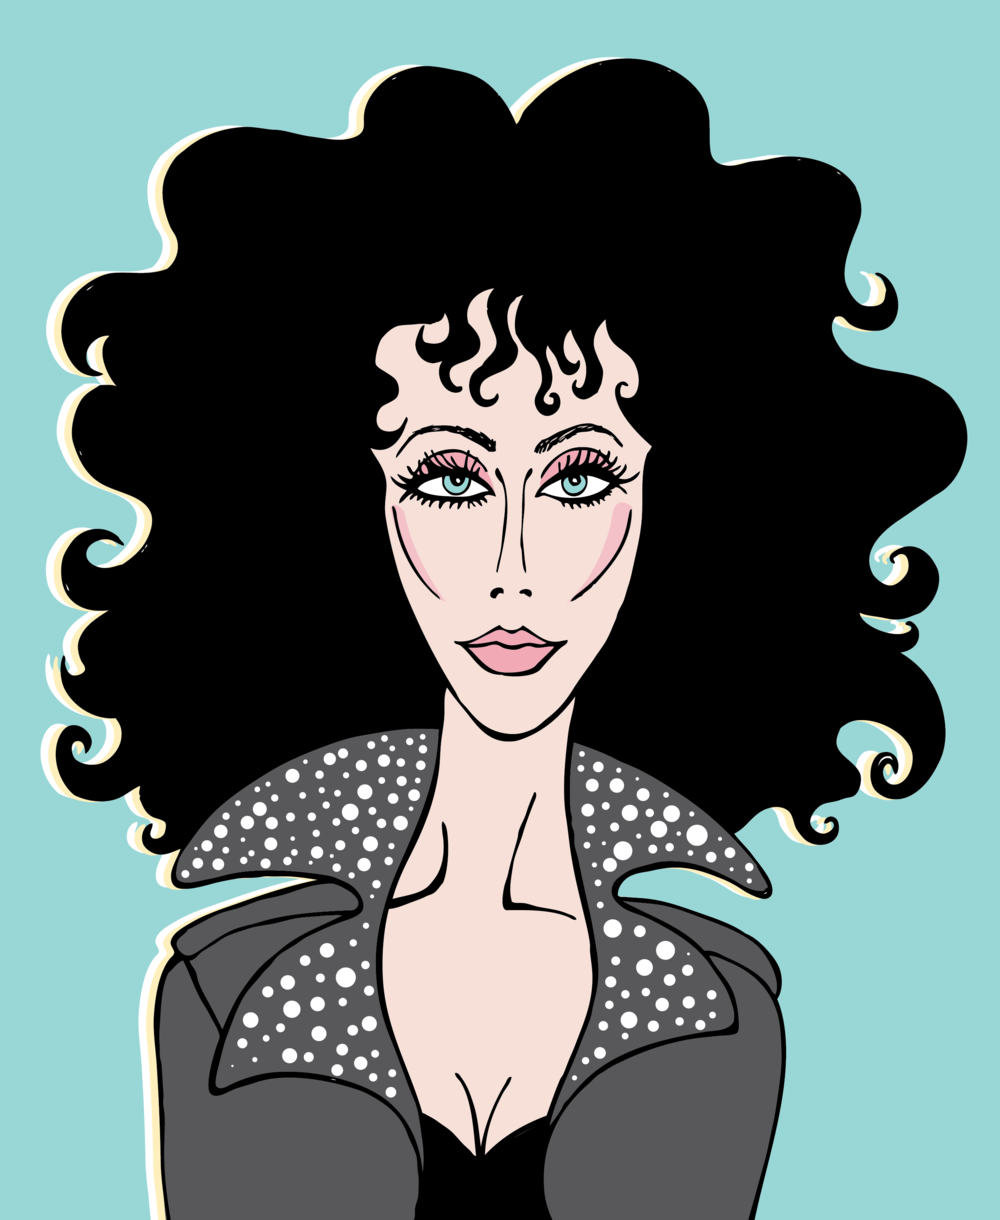 cher by grantkyoung